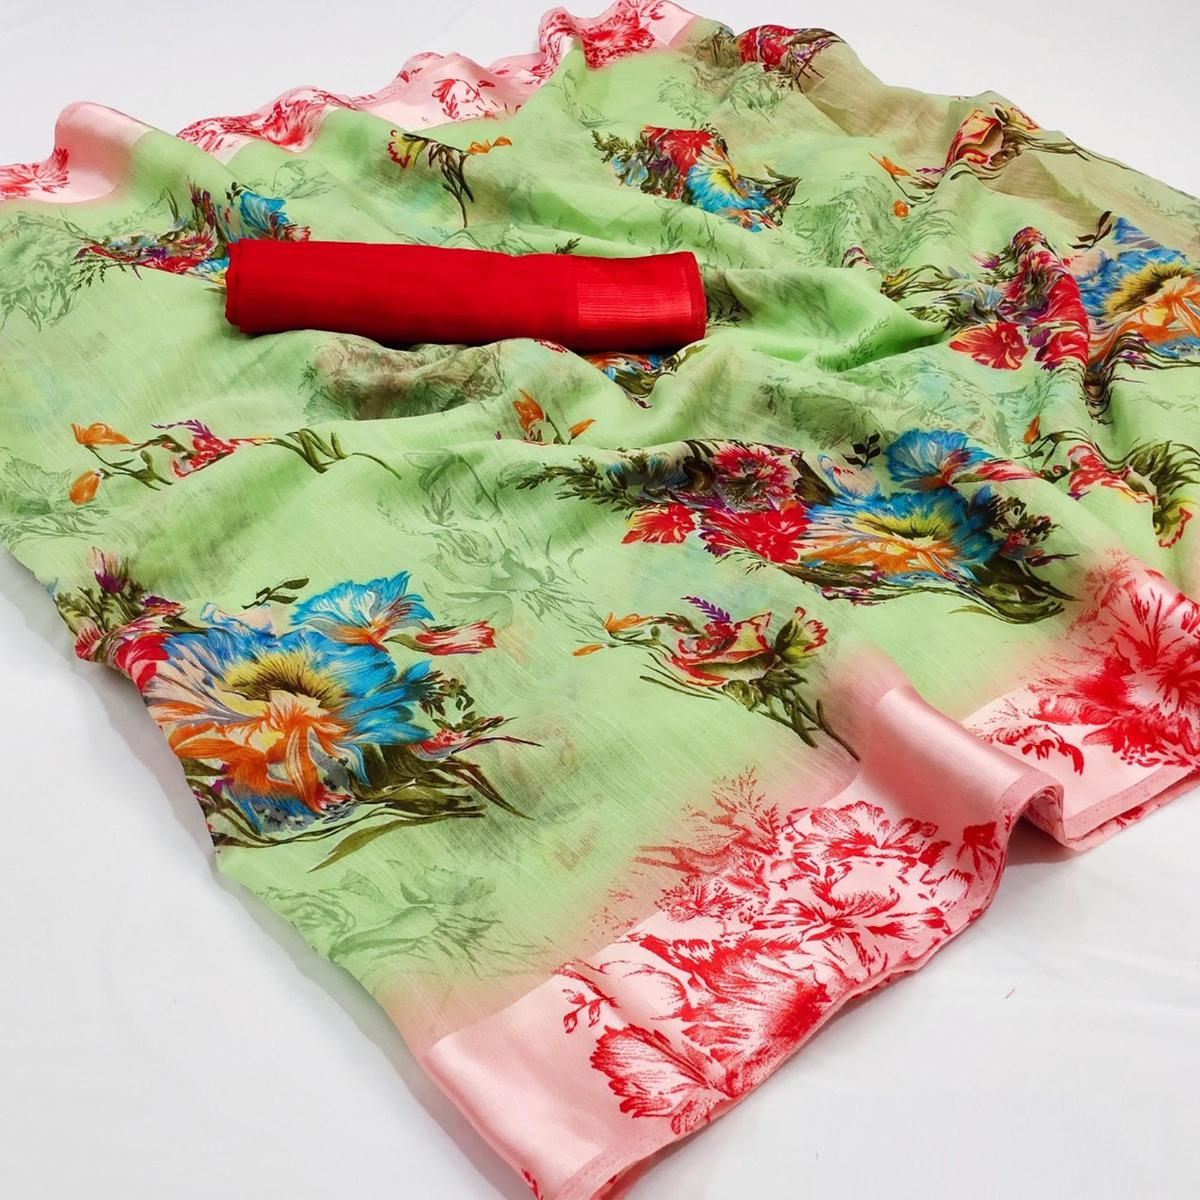 Marvellous Green Colored Casual Wear Floral Printed Cotton Linen Saree